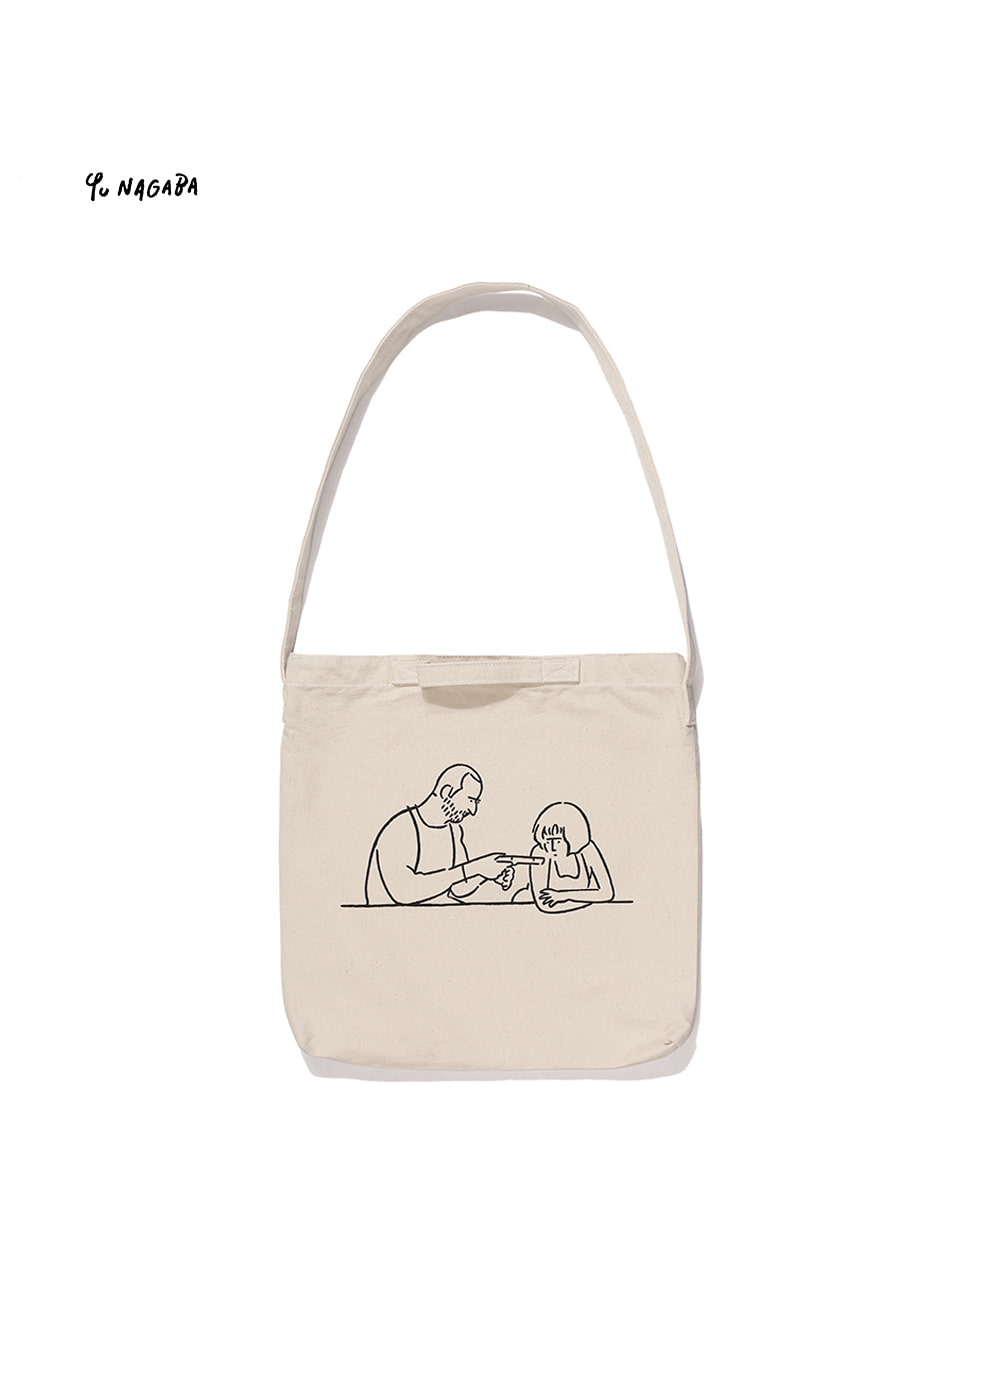 YU NAGABA - MAN AND GIRL TWO-WAY BAG neutral beige